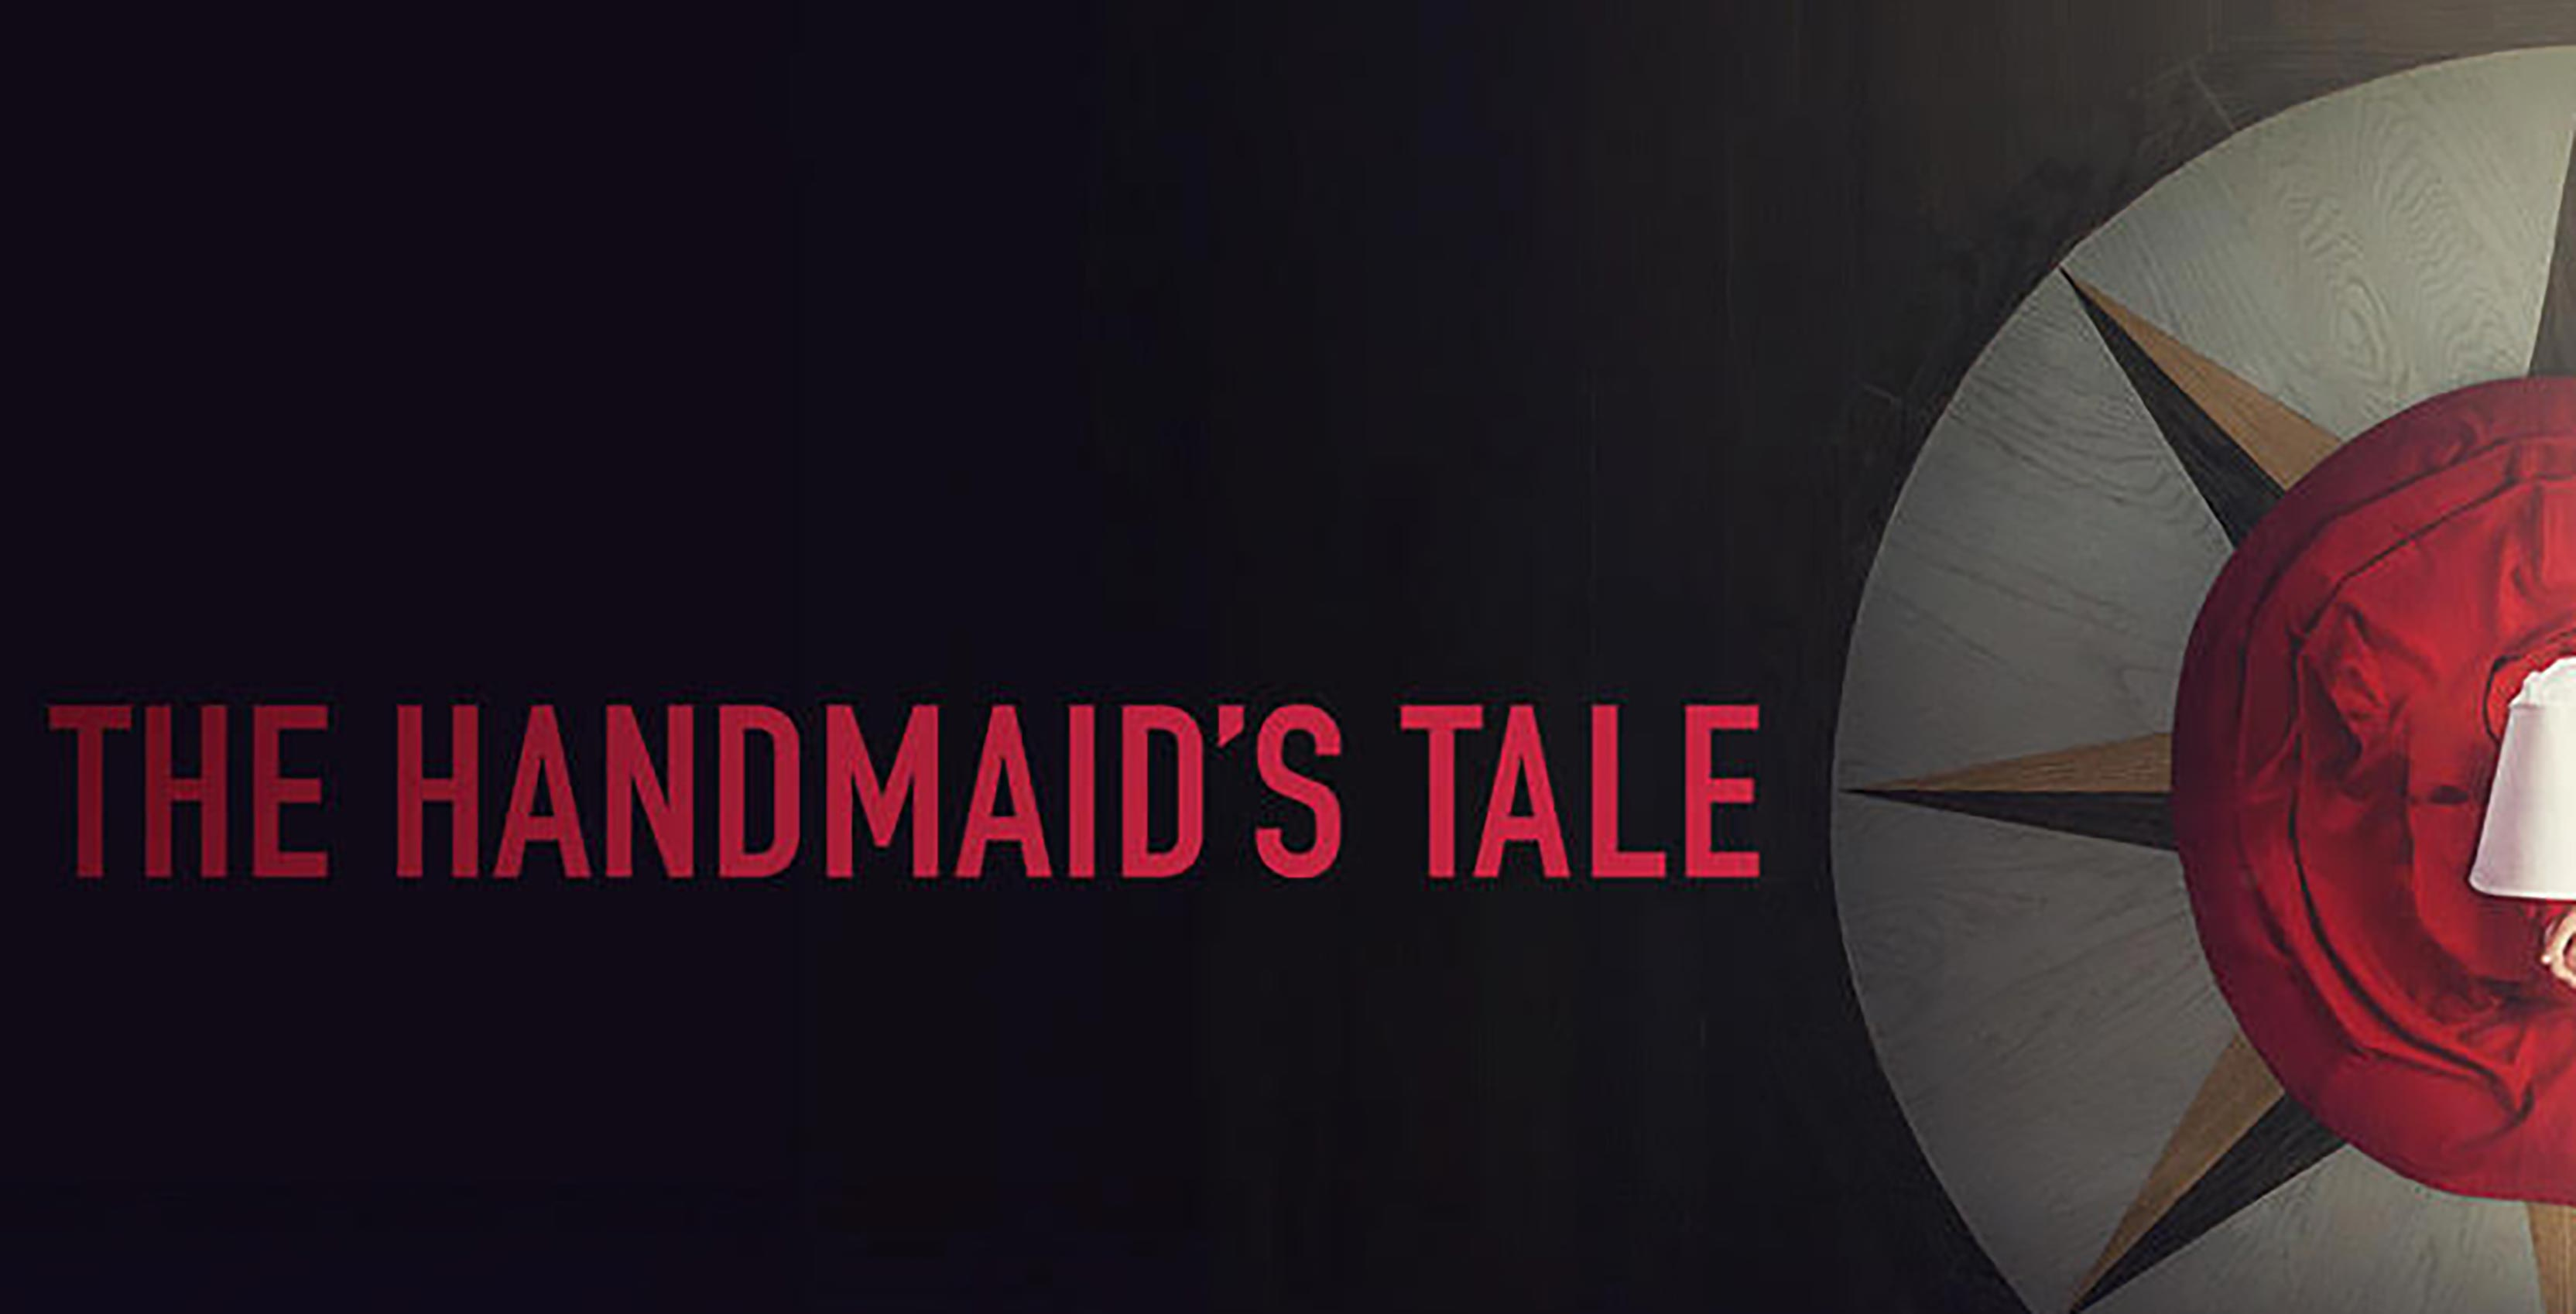 The Handmaid's Tale iTunes